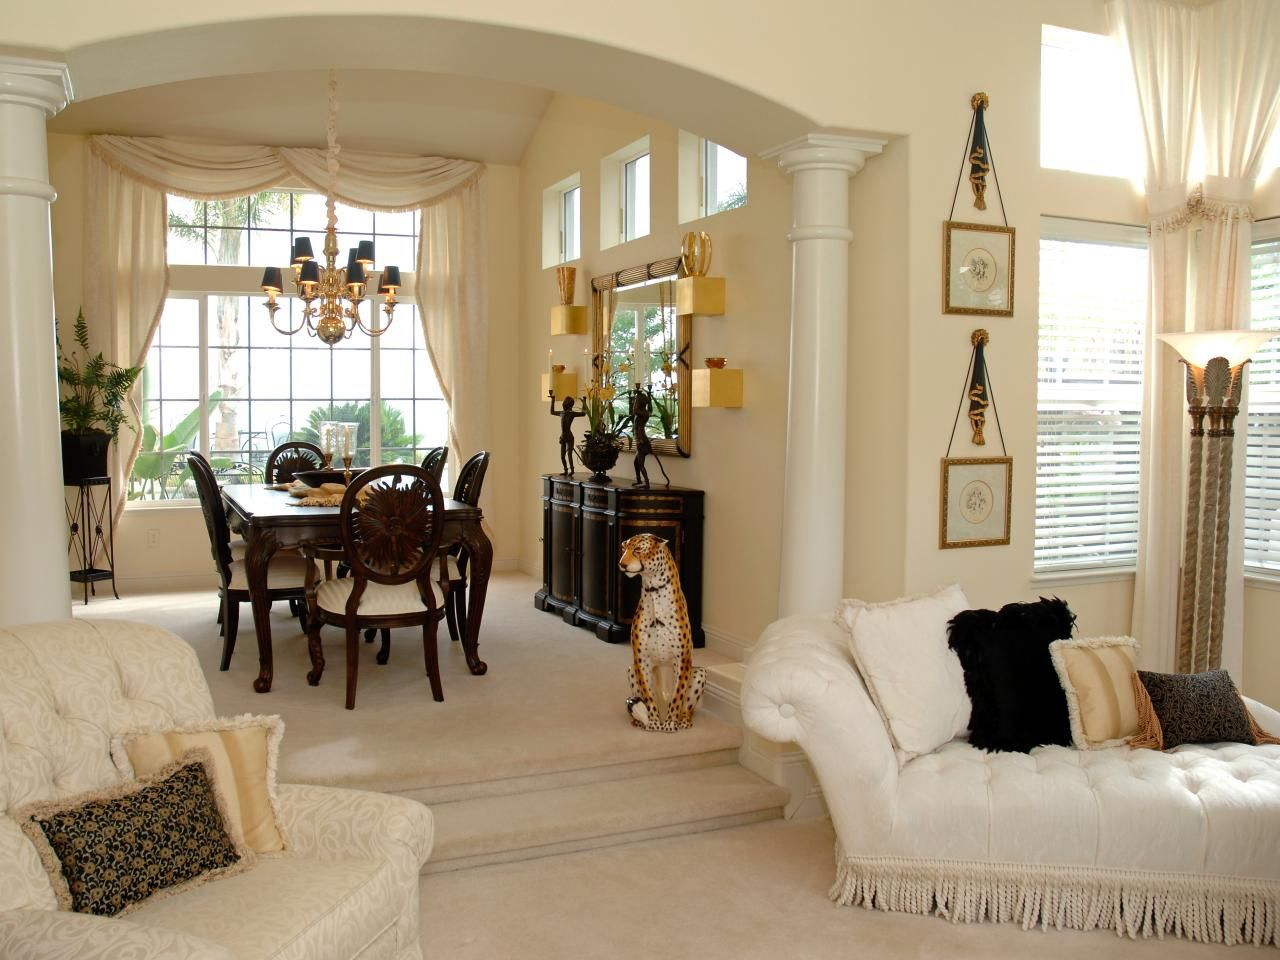 This Large Adjoining Living Room And Dining Area Is Separated By An Arched Entryway With